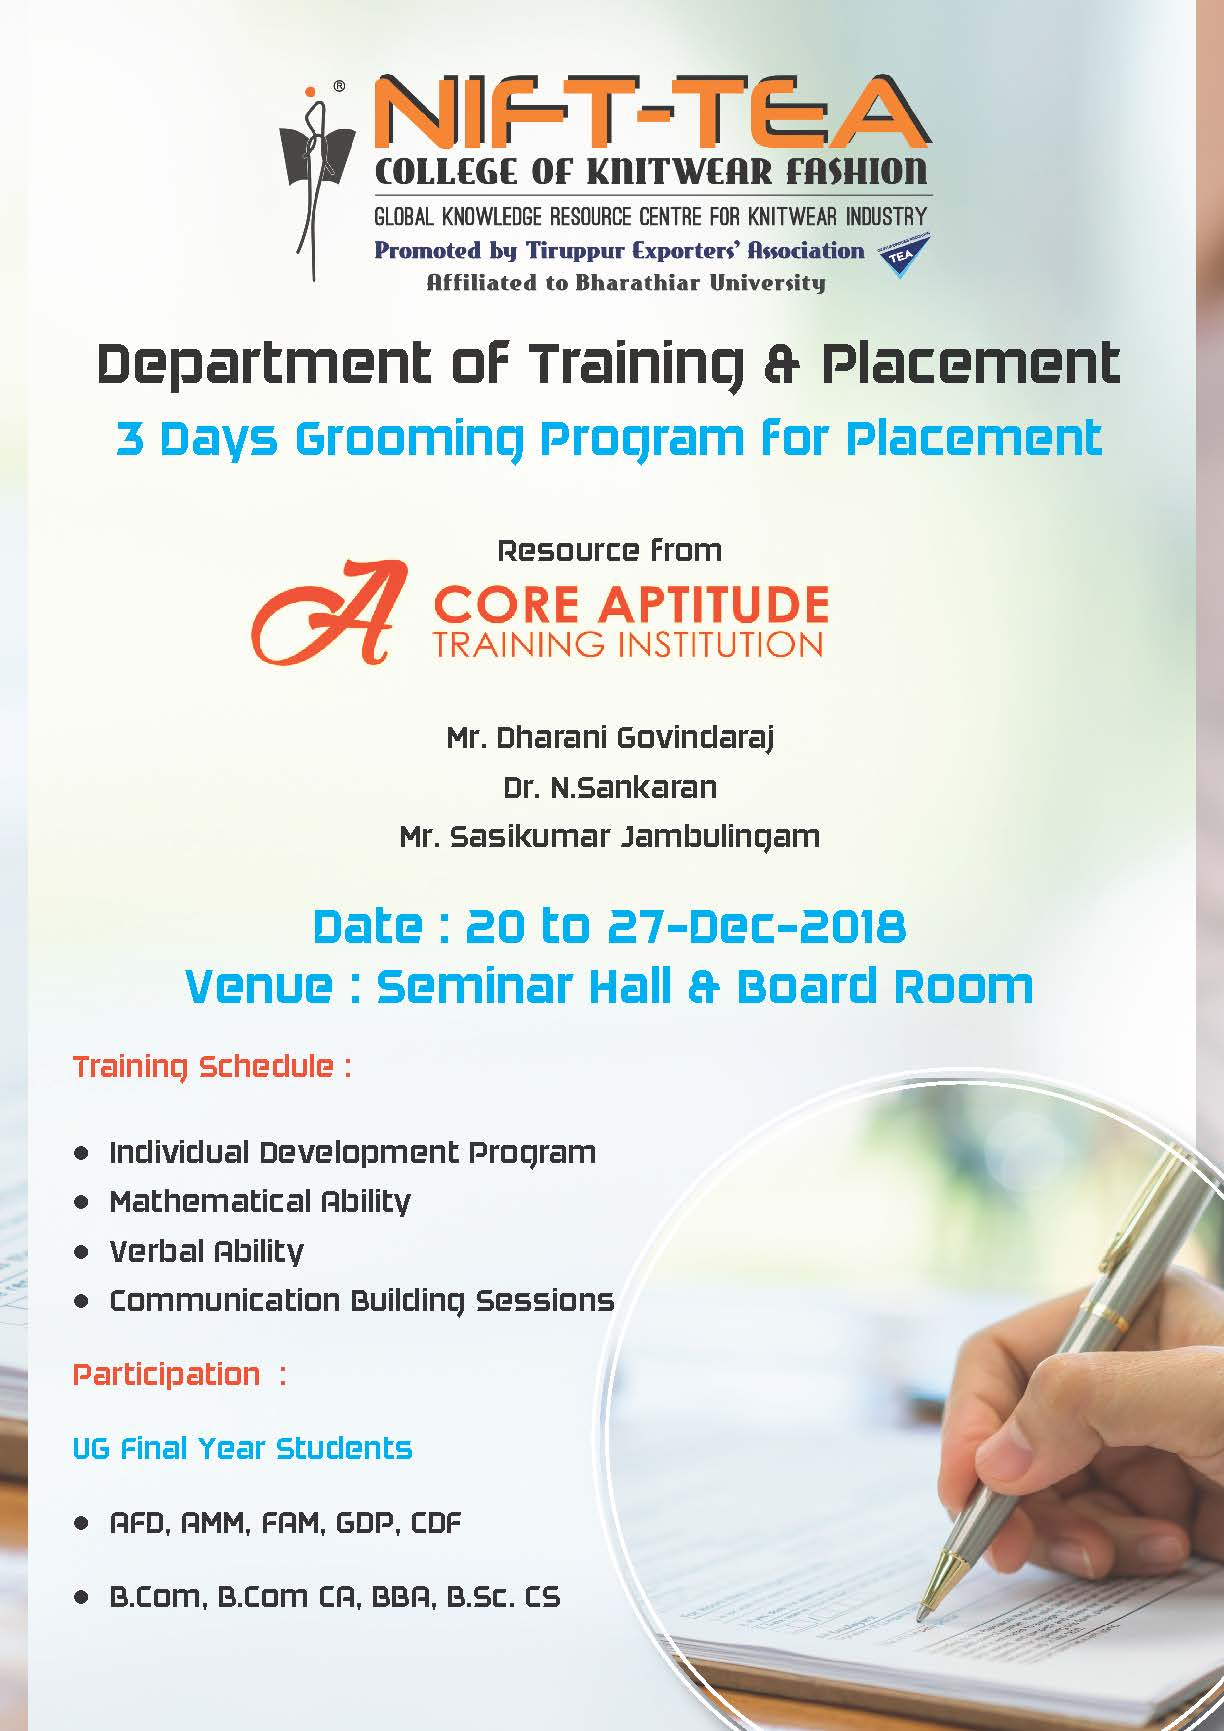 3 Days Grooming Program for Placement